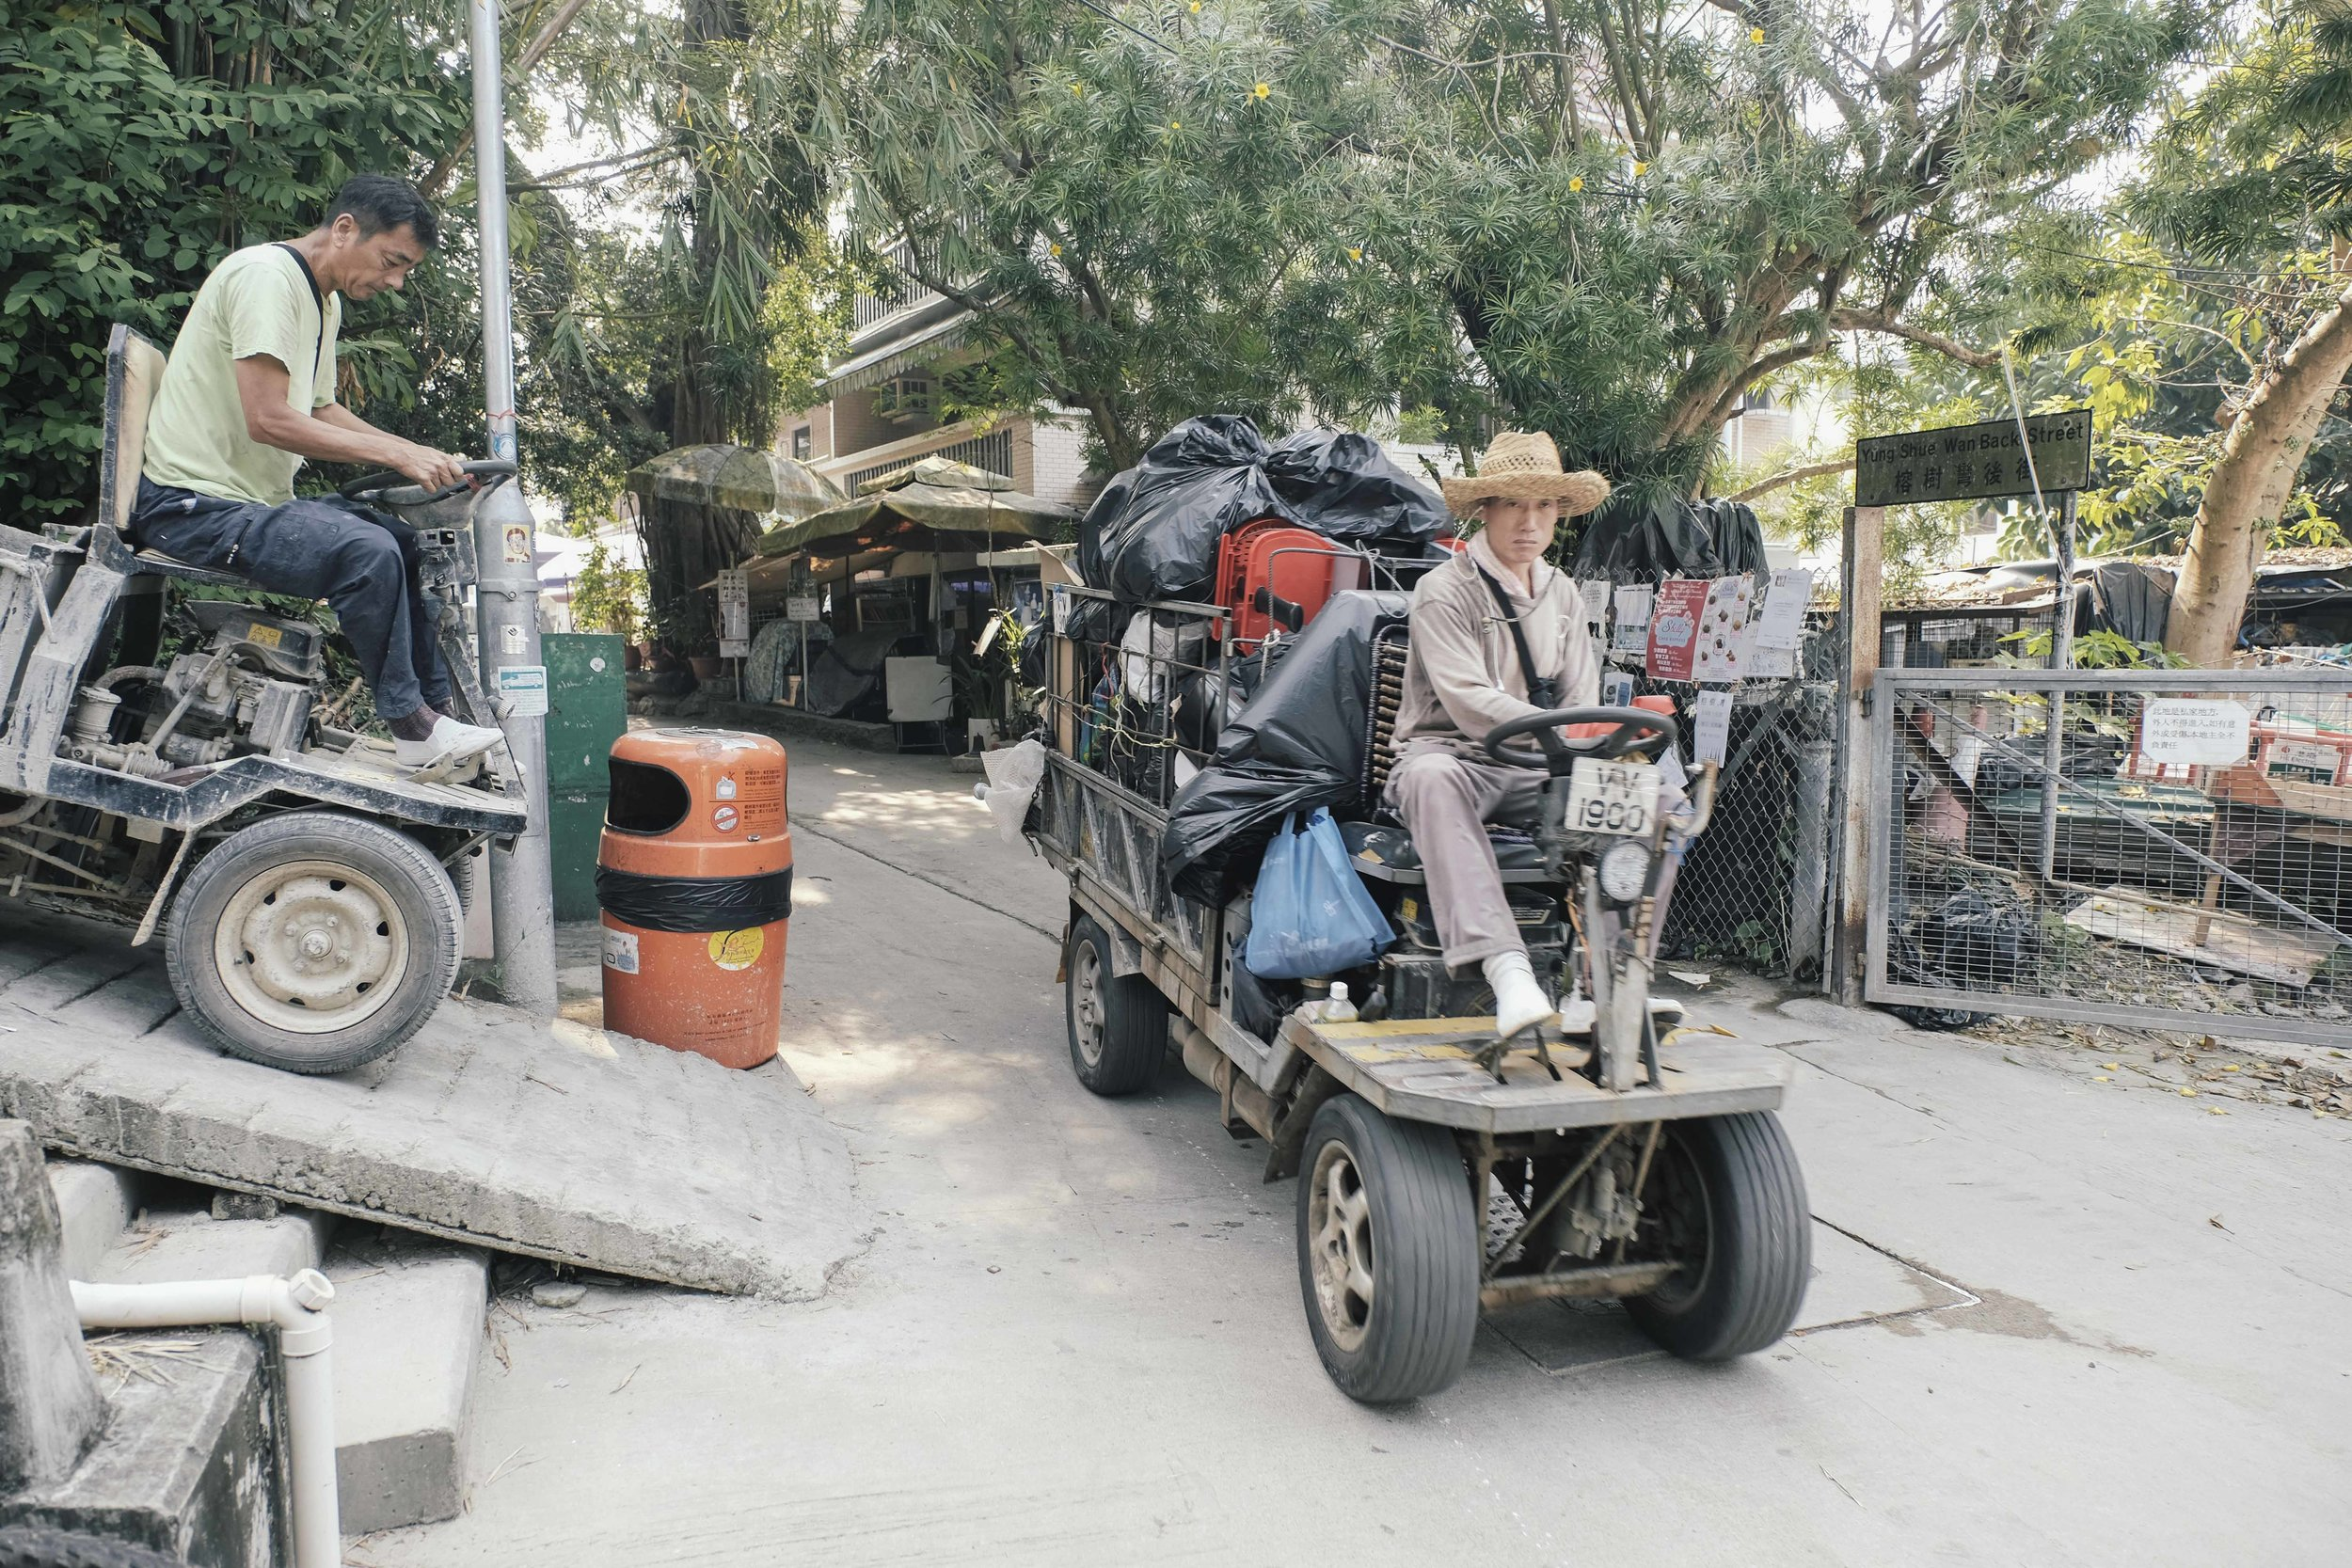 These tiny tractors used to haul building materials and trash are the only form of motorised transport allowed.